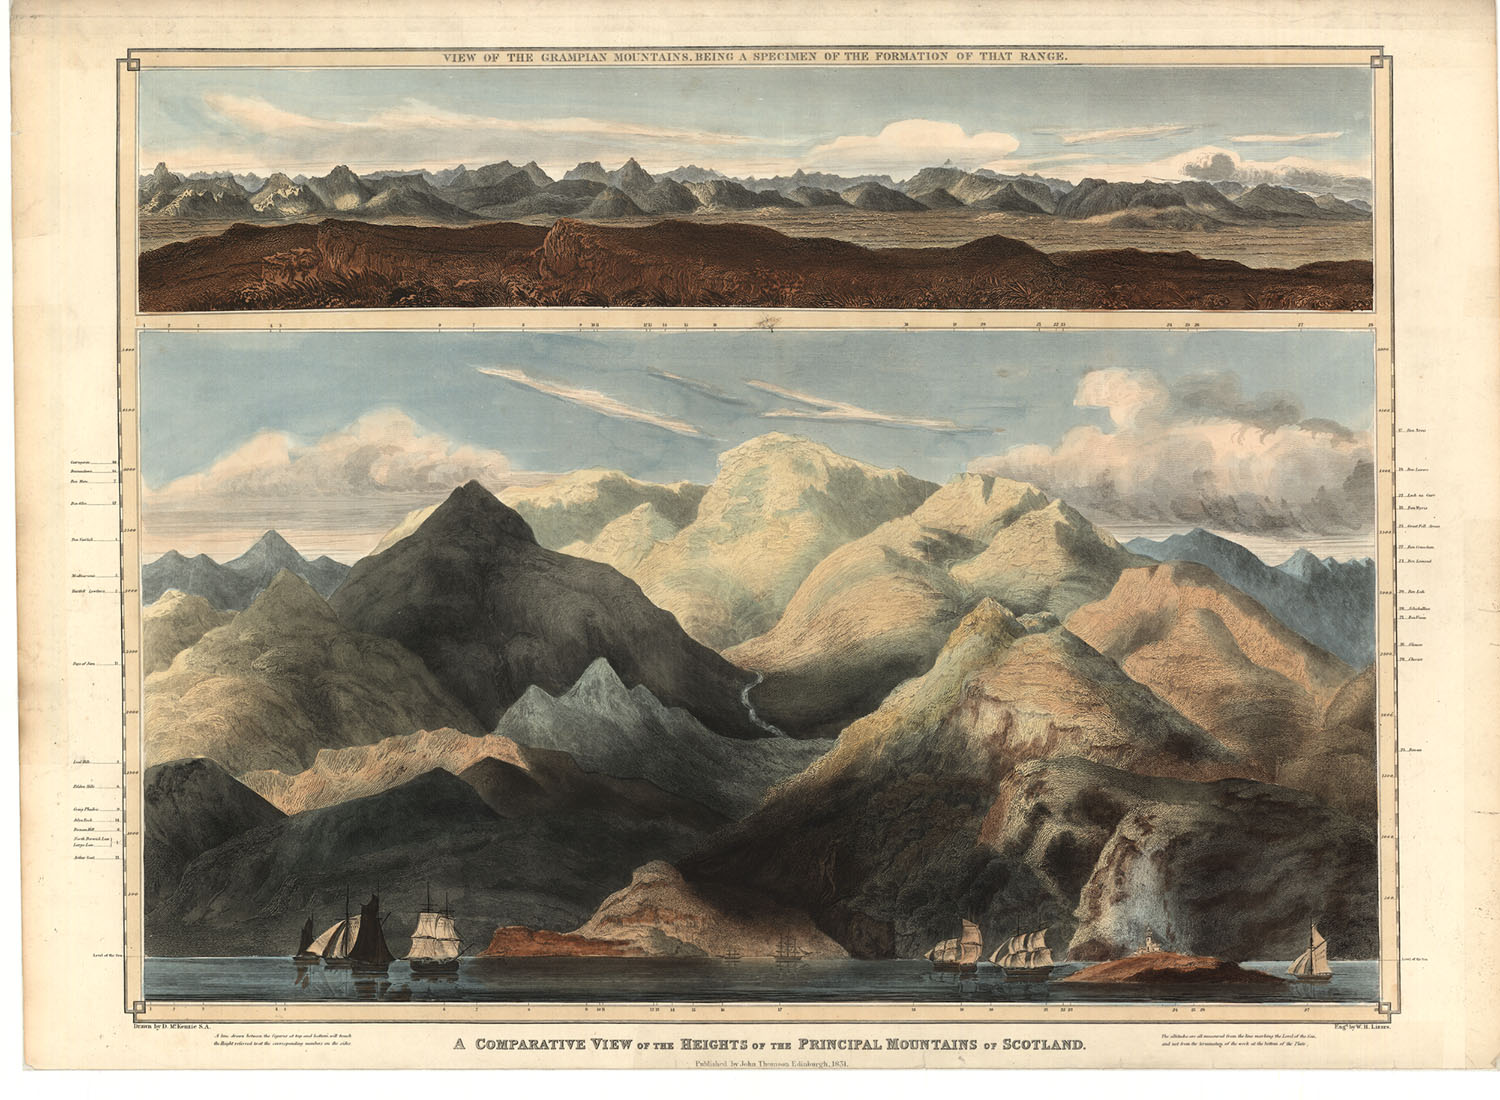 Image of A comparative view of the heights of the principal mountains of Scotland, printed by J Thomson 1831